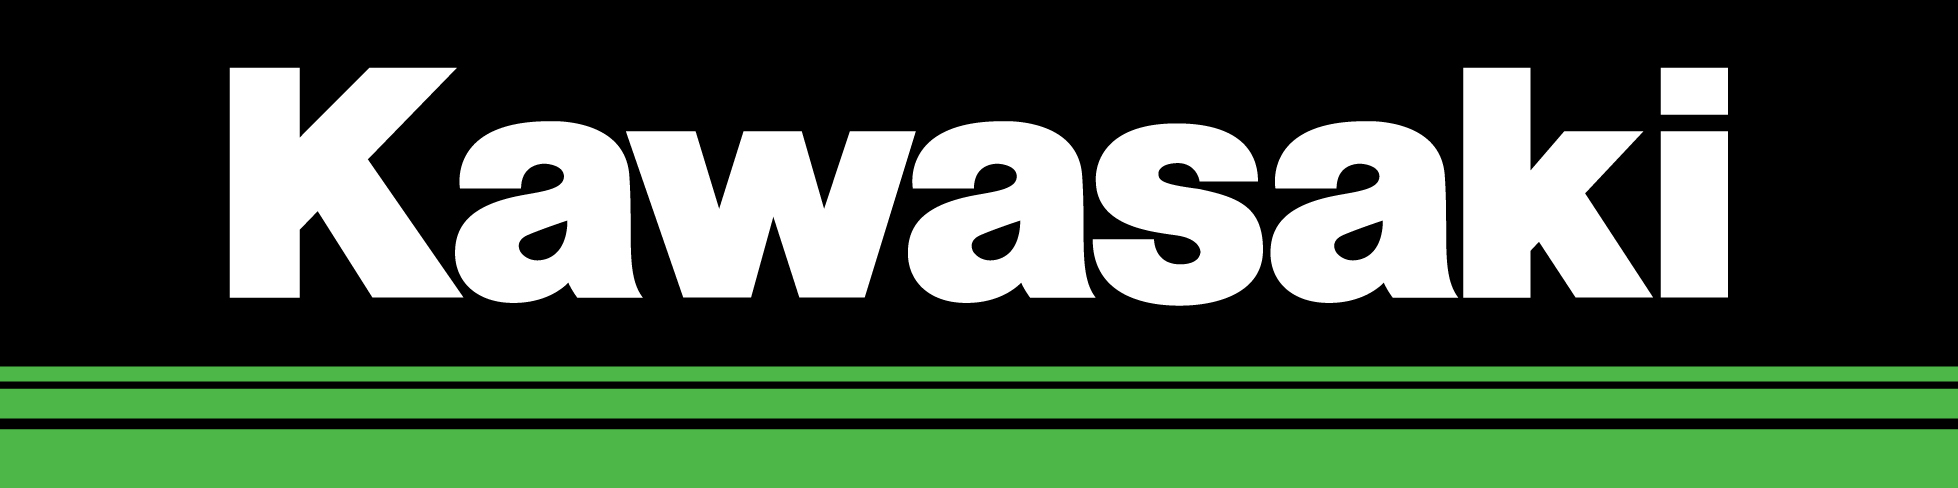 Offering a wide range of Summer products. - https://www.kawasaki.ca